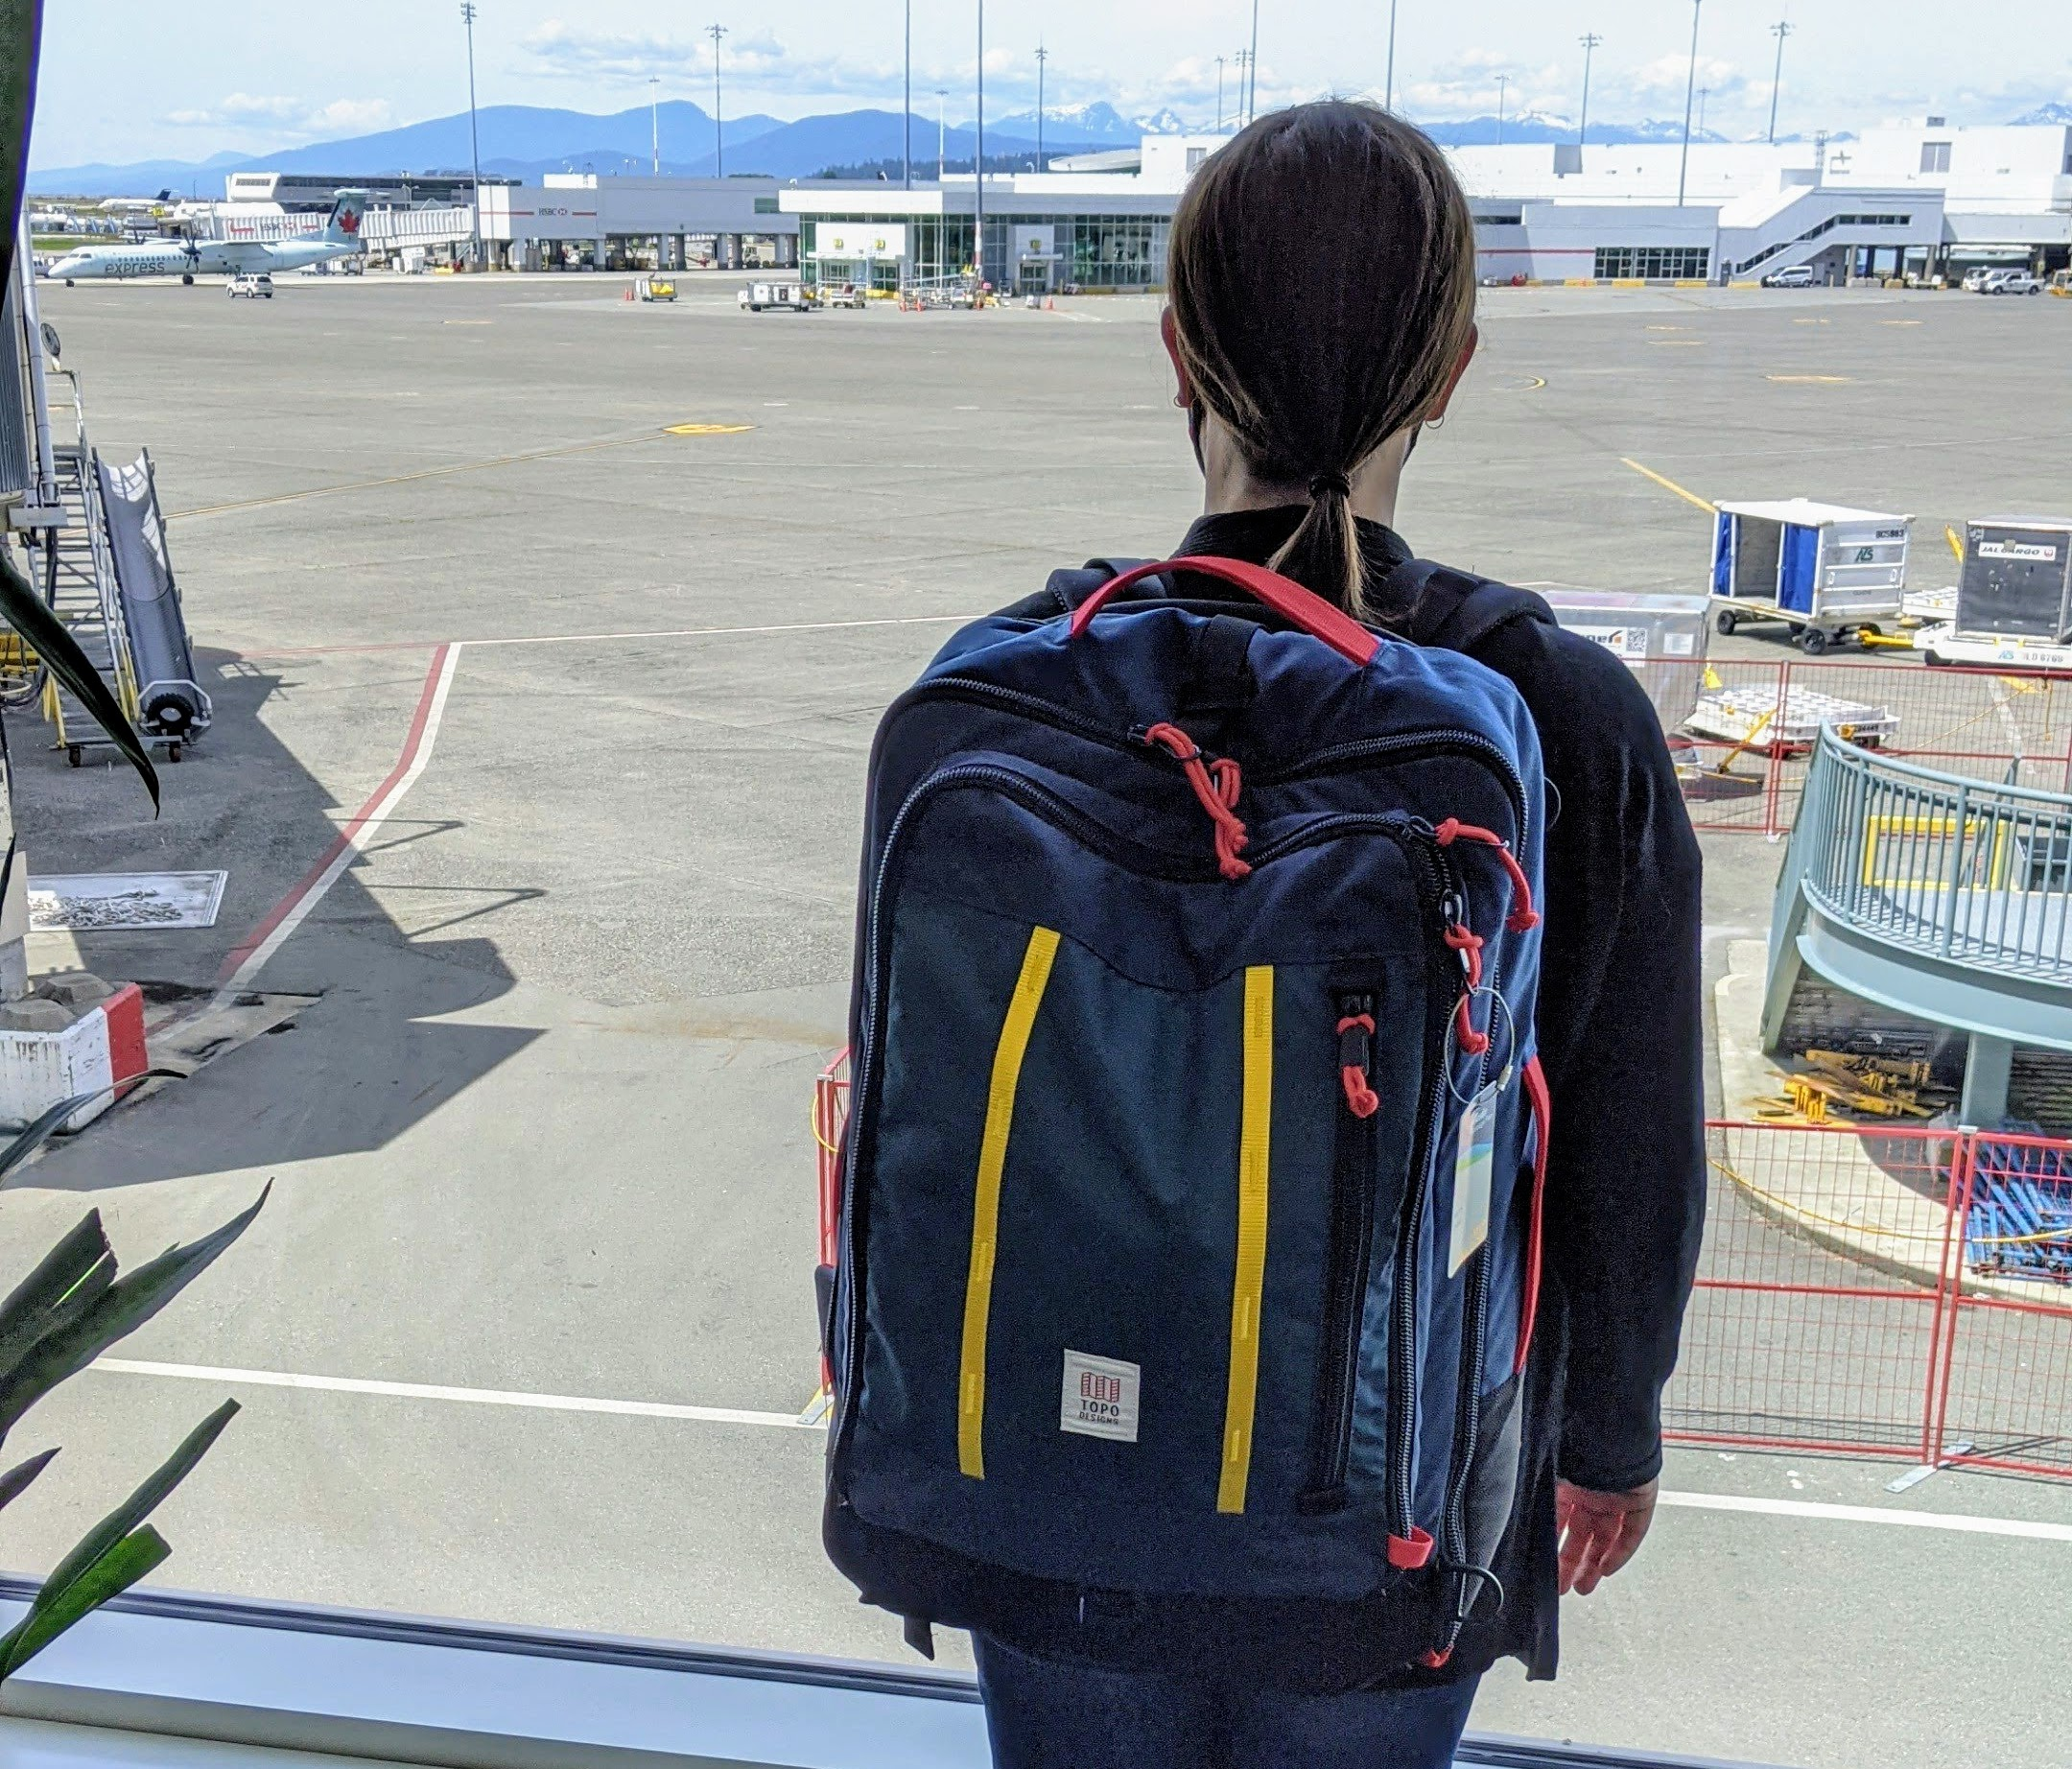 Max ready to test out the Topo Designs bag on a flight